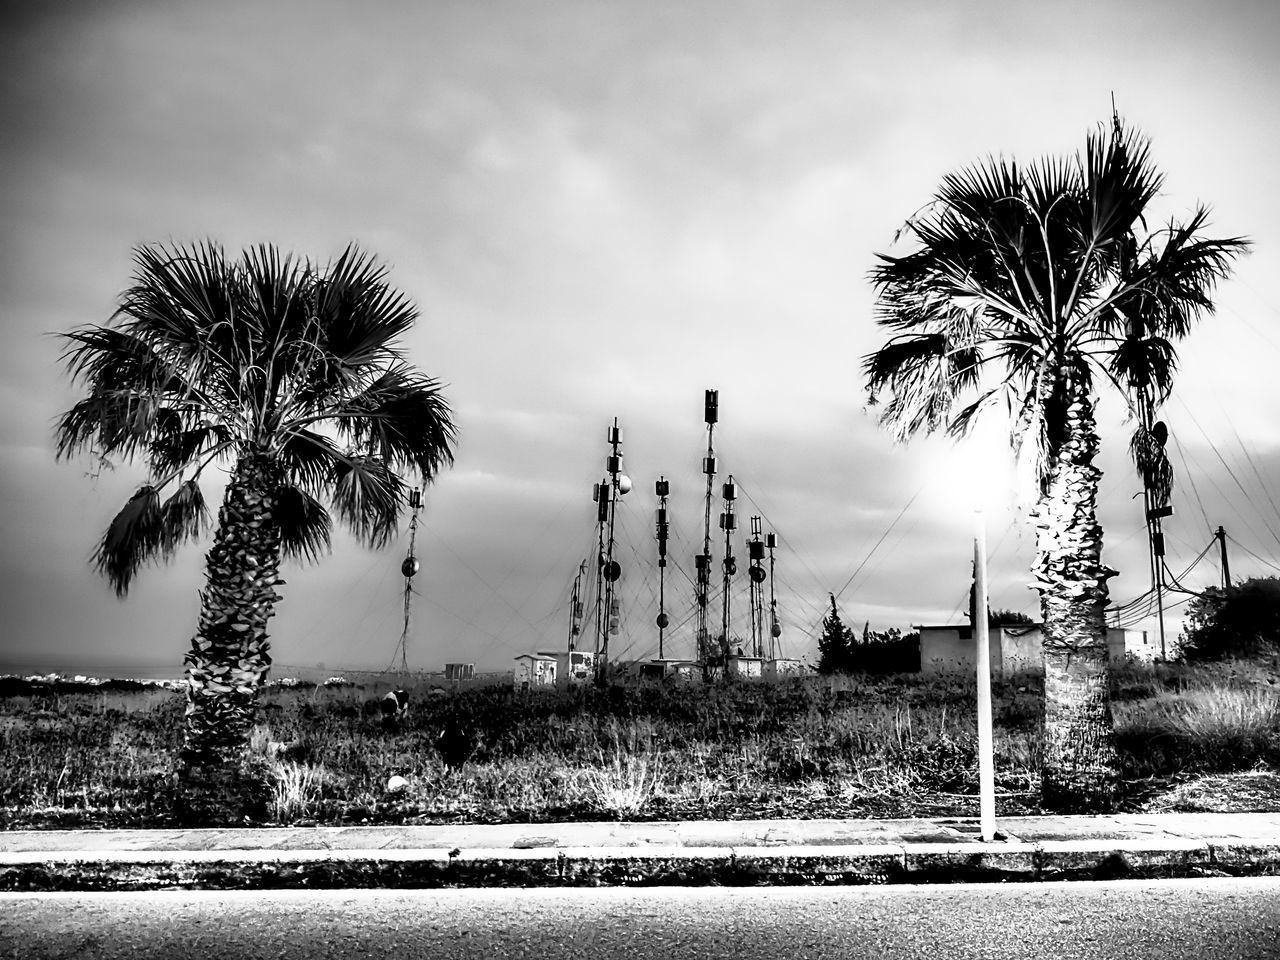 palm tree, tree, sky, no people, outdoors, built structure, day, nature